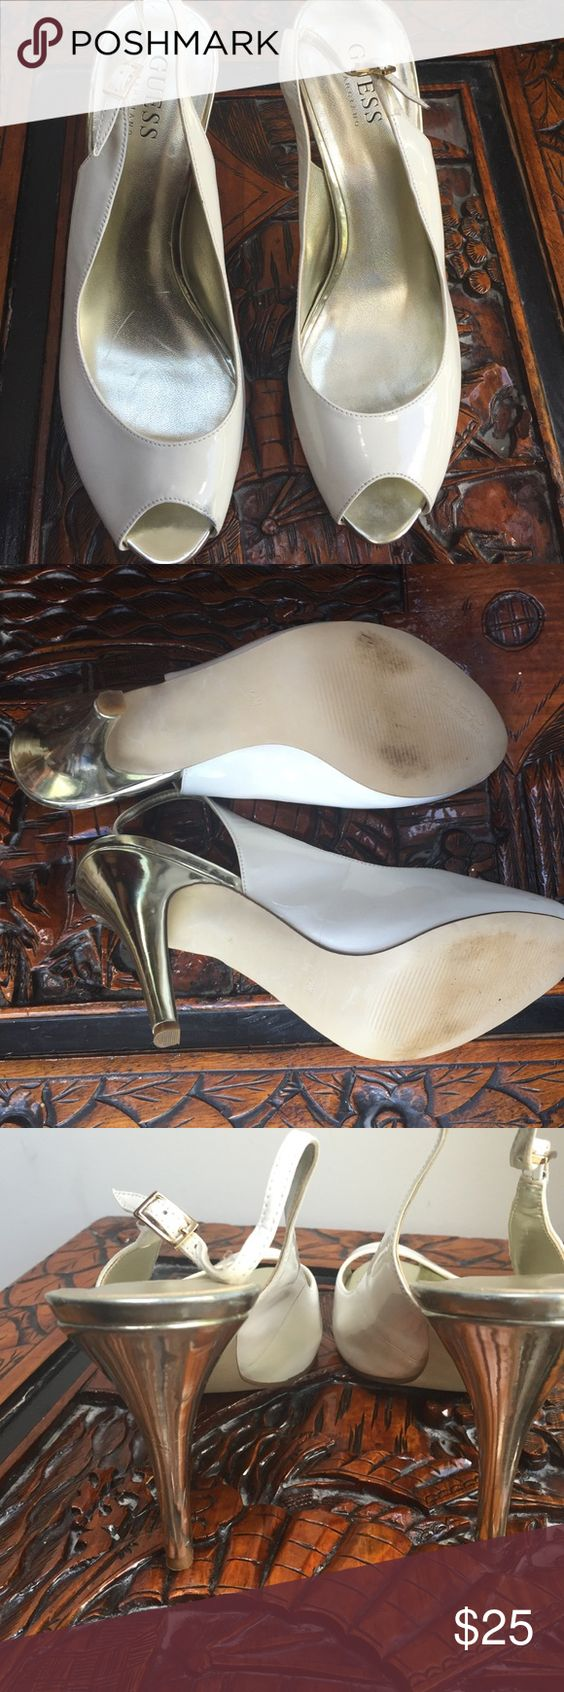 """GUESS HIGH HILL SHOES. Genteelly worn, good condition white shoes with golden 4.5"""" hills small spot in right shoes. 7.5 M Guess by Marciano Shoes Heels"""